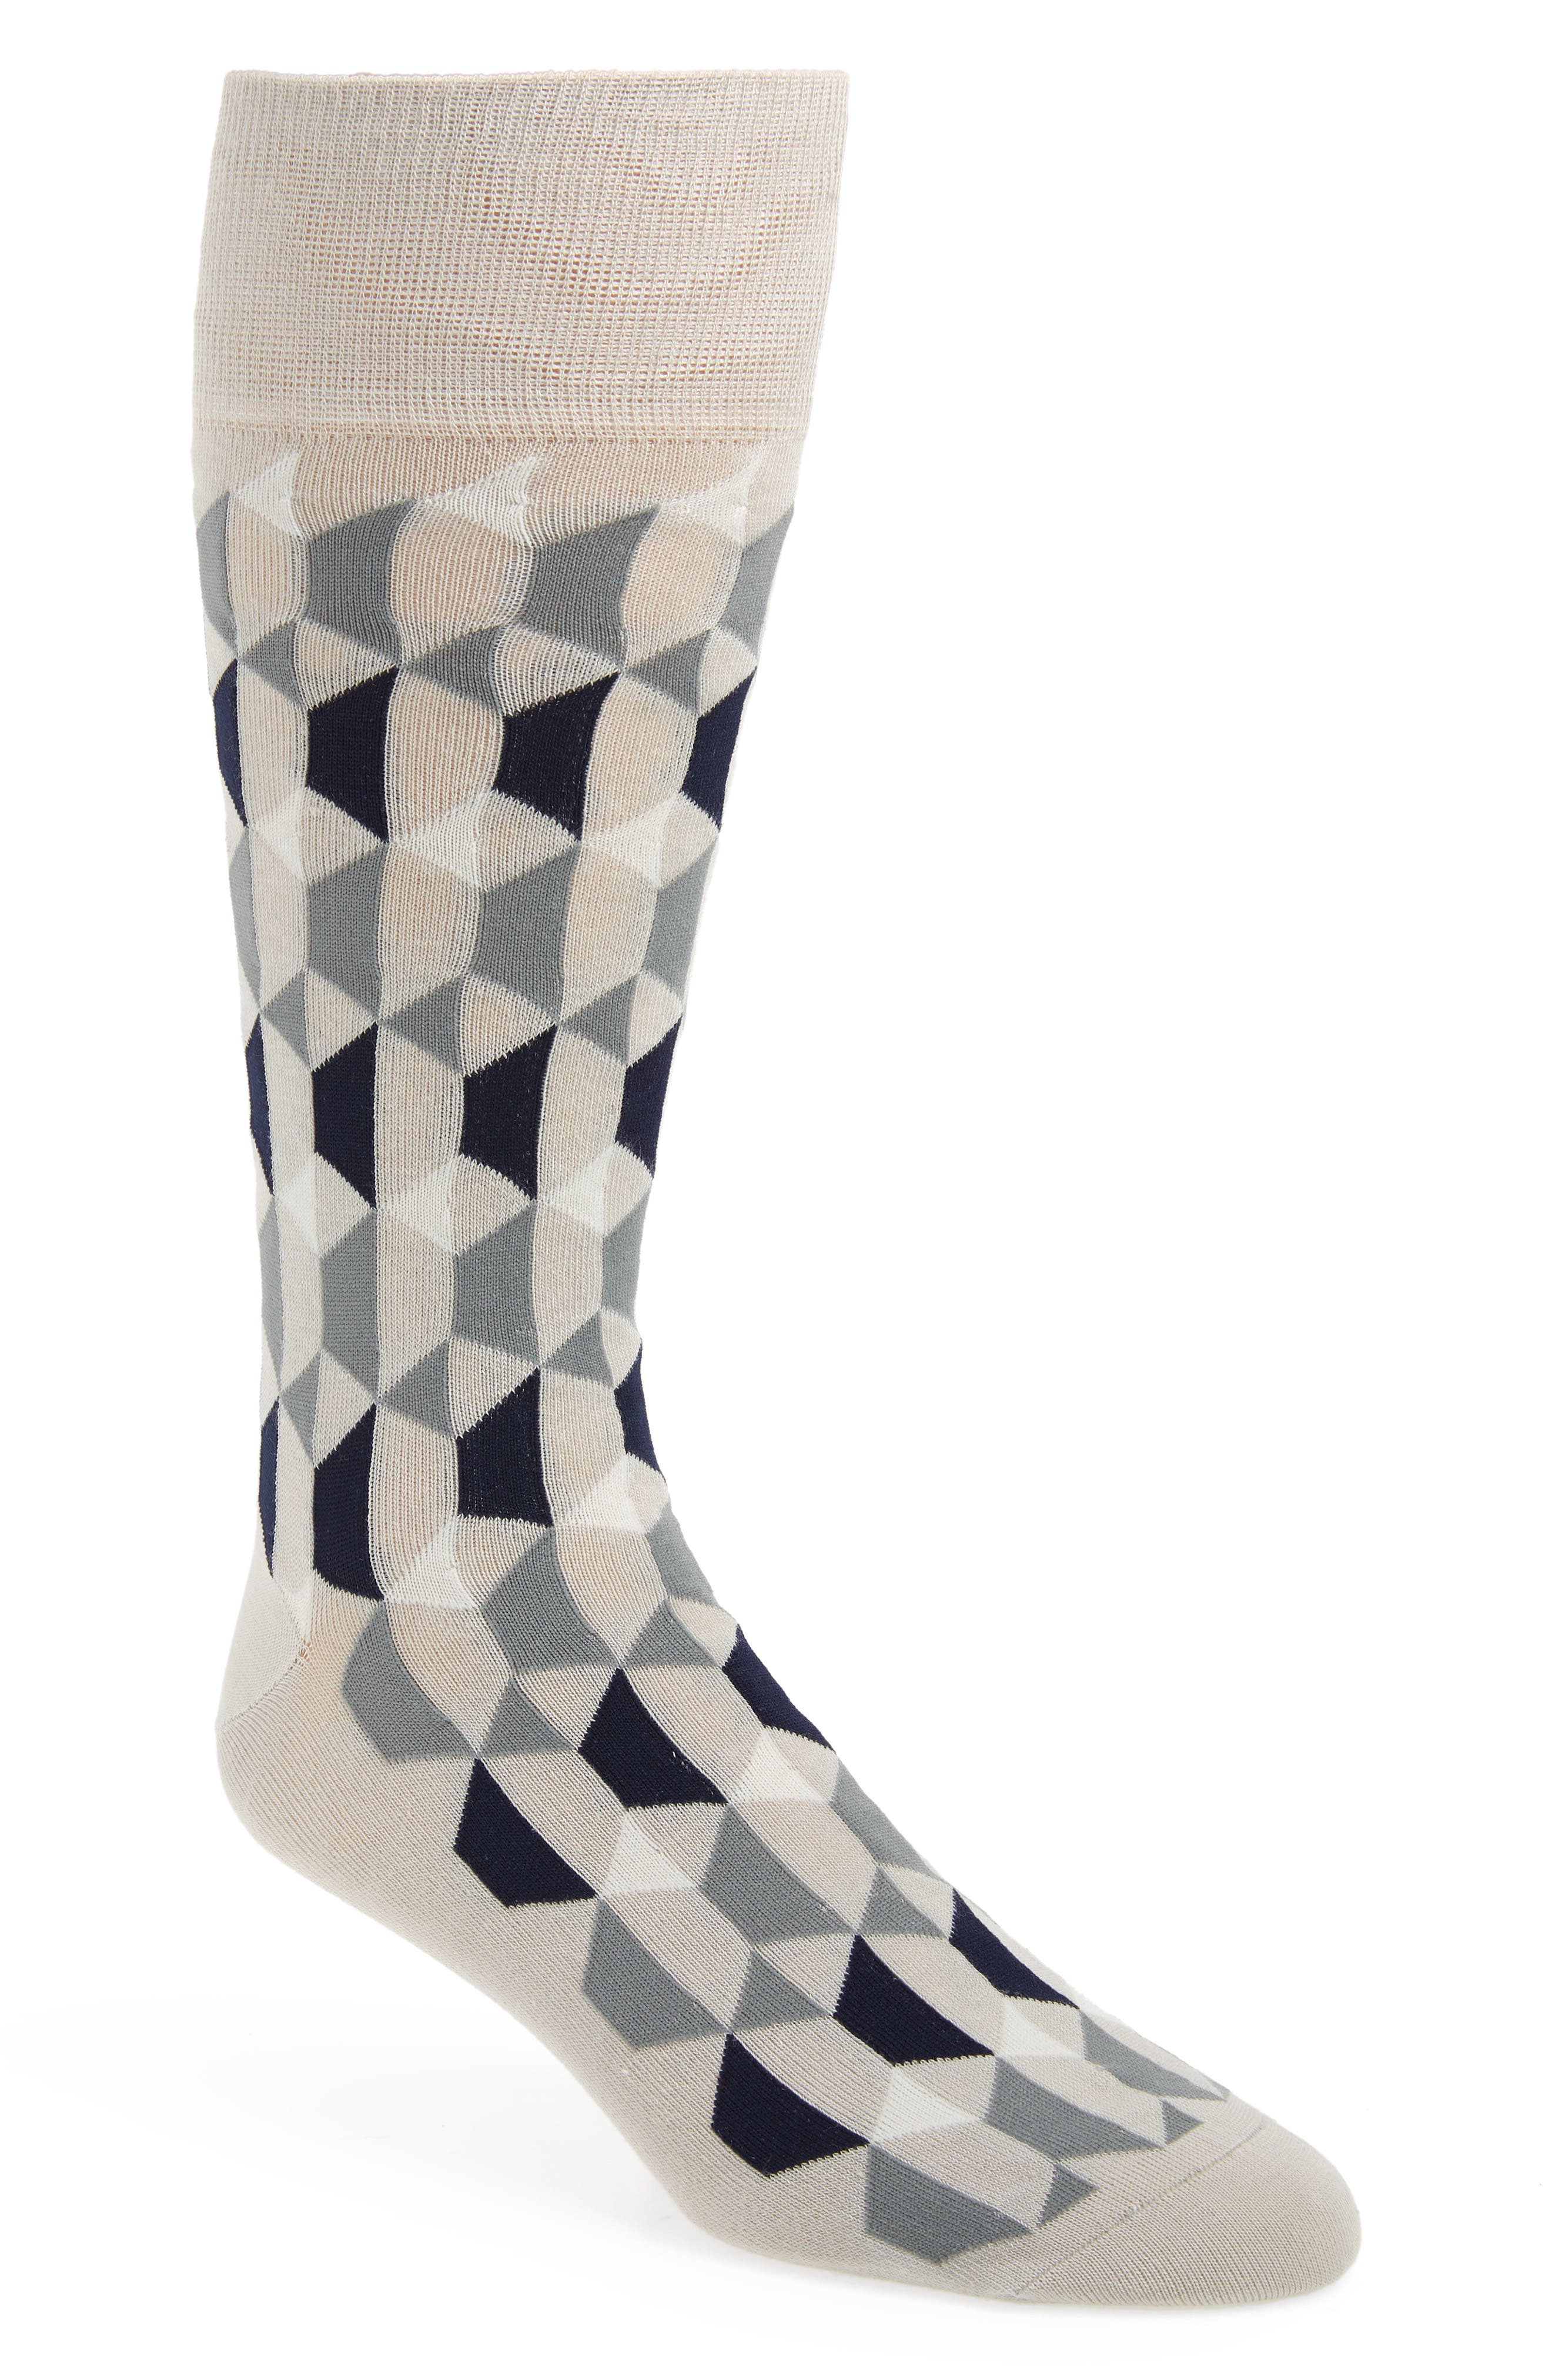 Geometric Socks,                         Main,                         color, 030